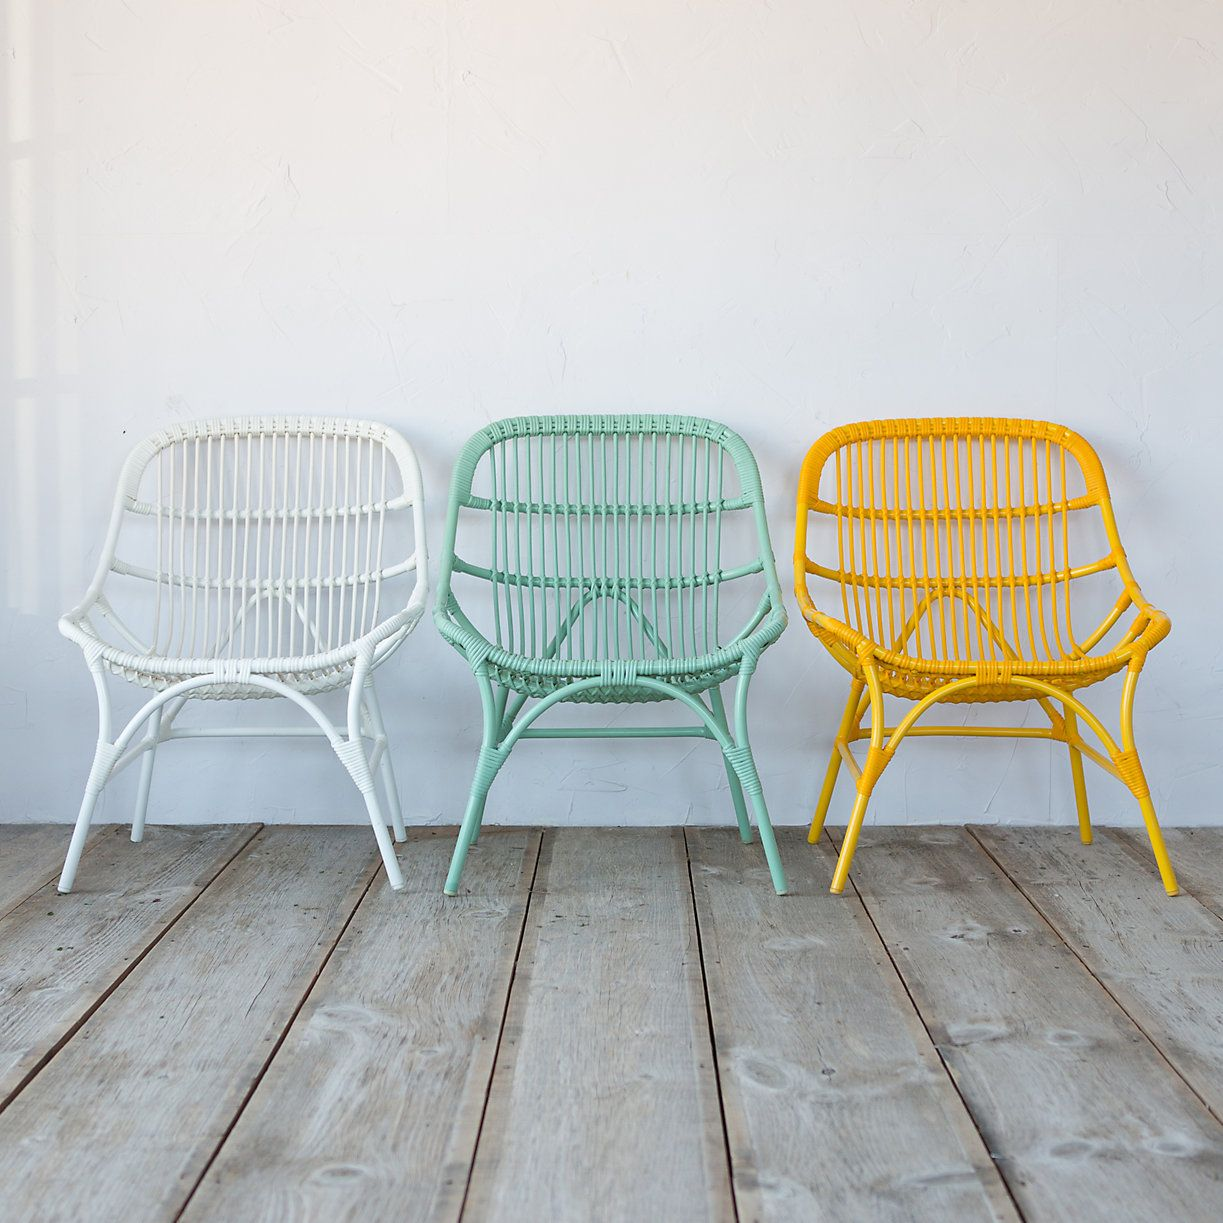 Open Weave All Weather Wicker Chair Metal Outdoor Furniture Diy Patio Furniture Outdoor Chairs